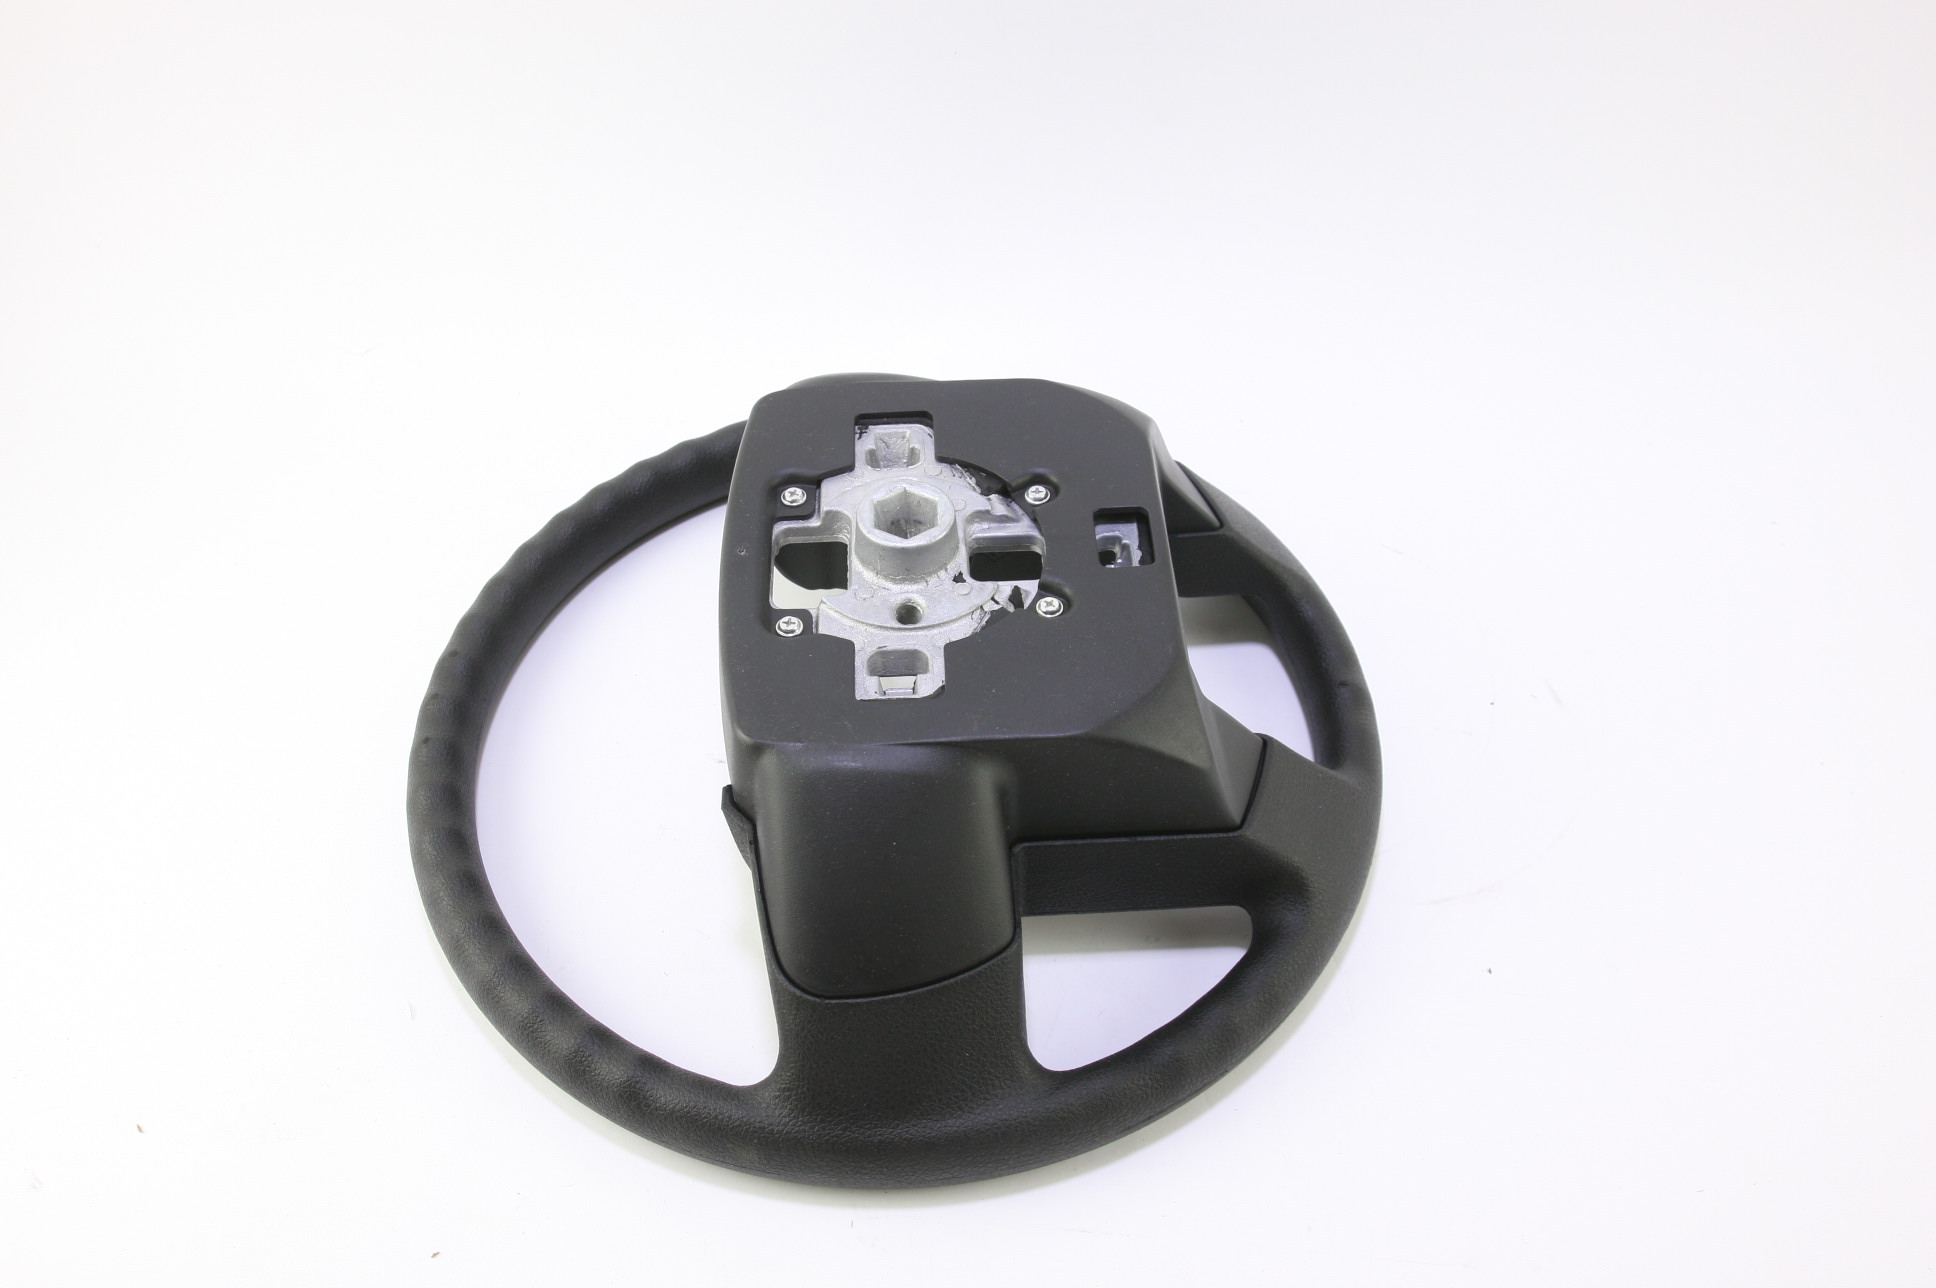 *** New OEM BC3Z3600CC Ford 11-12 F-250 Super Duty Steering Wheel Free Shipping - image 7